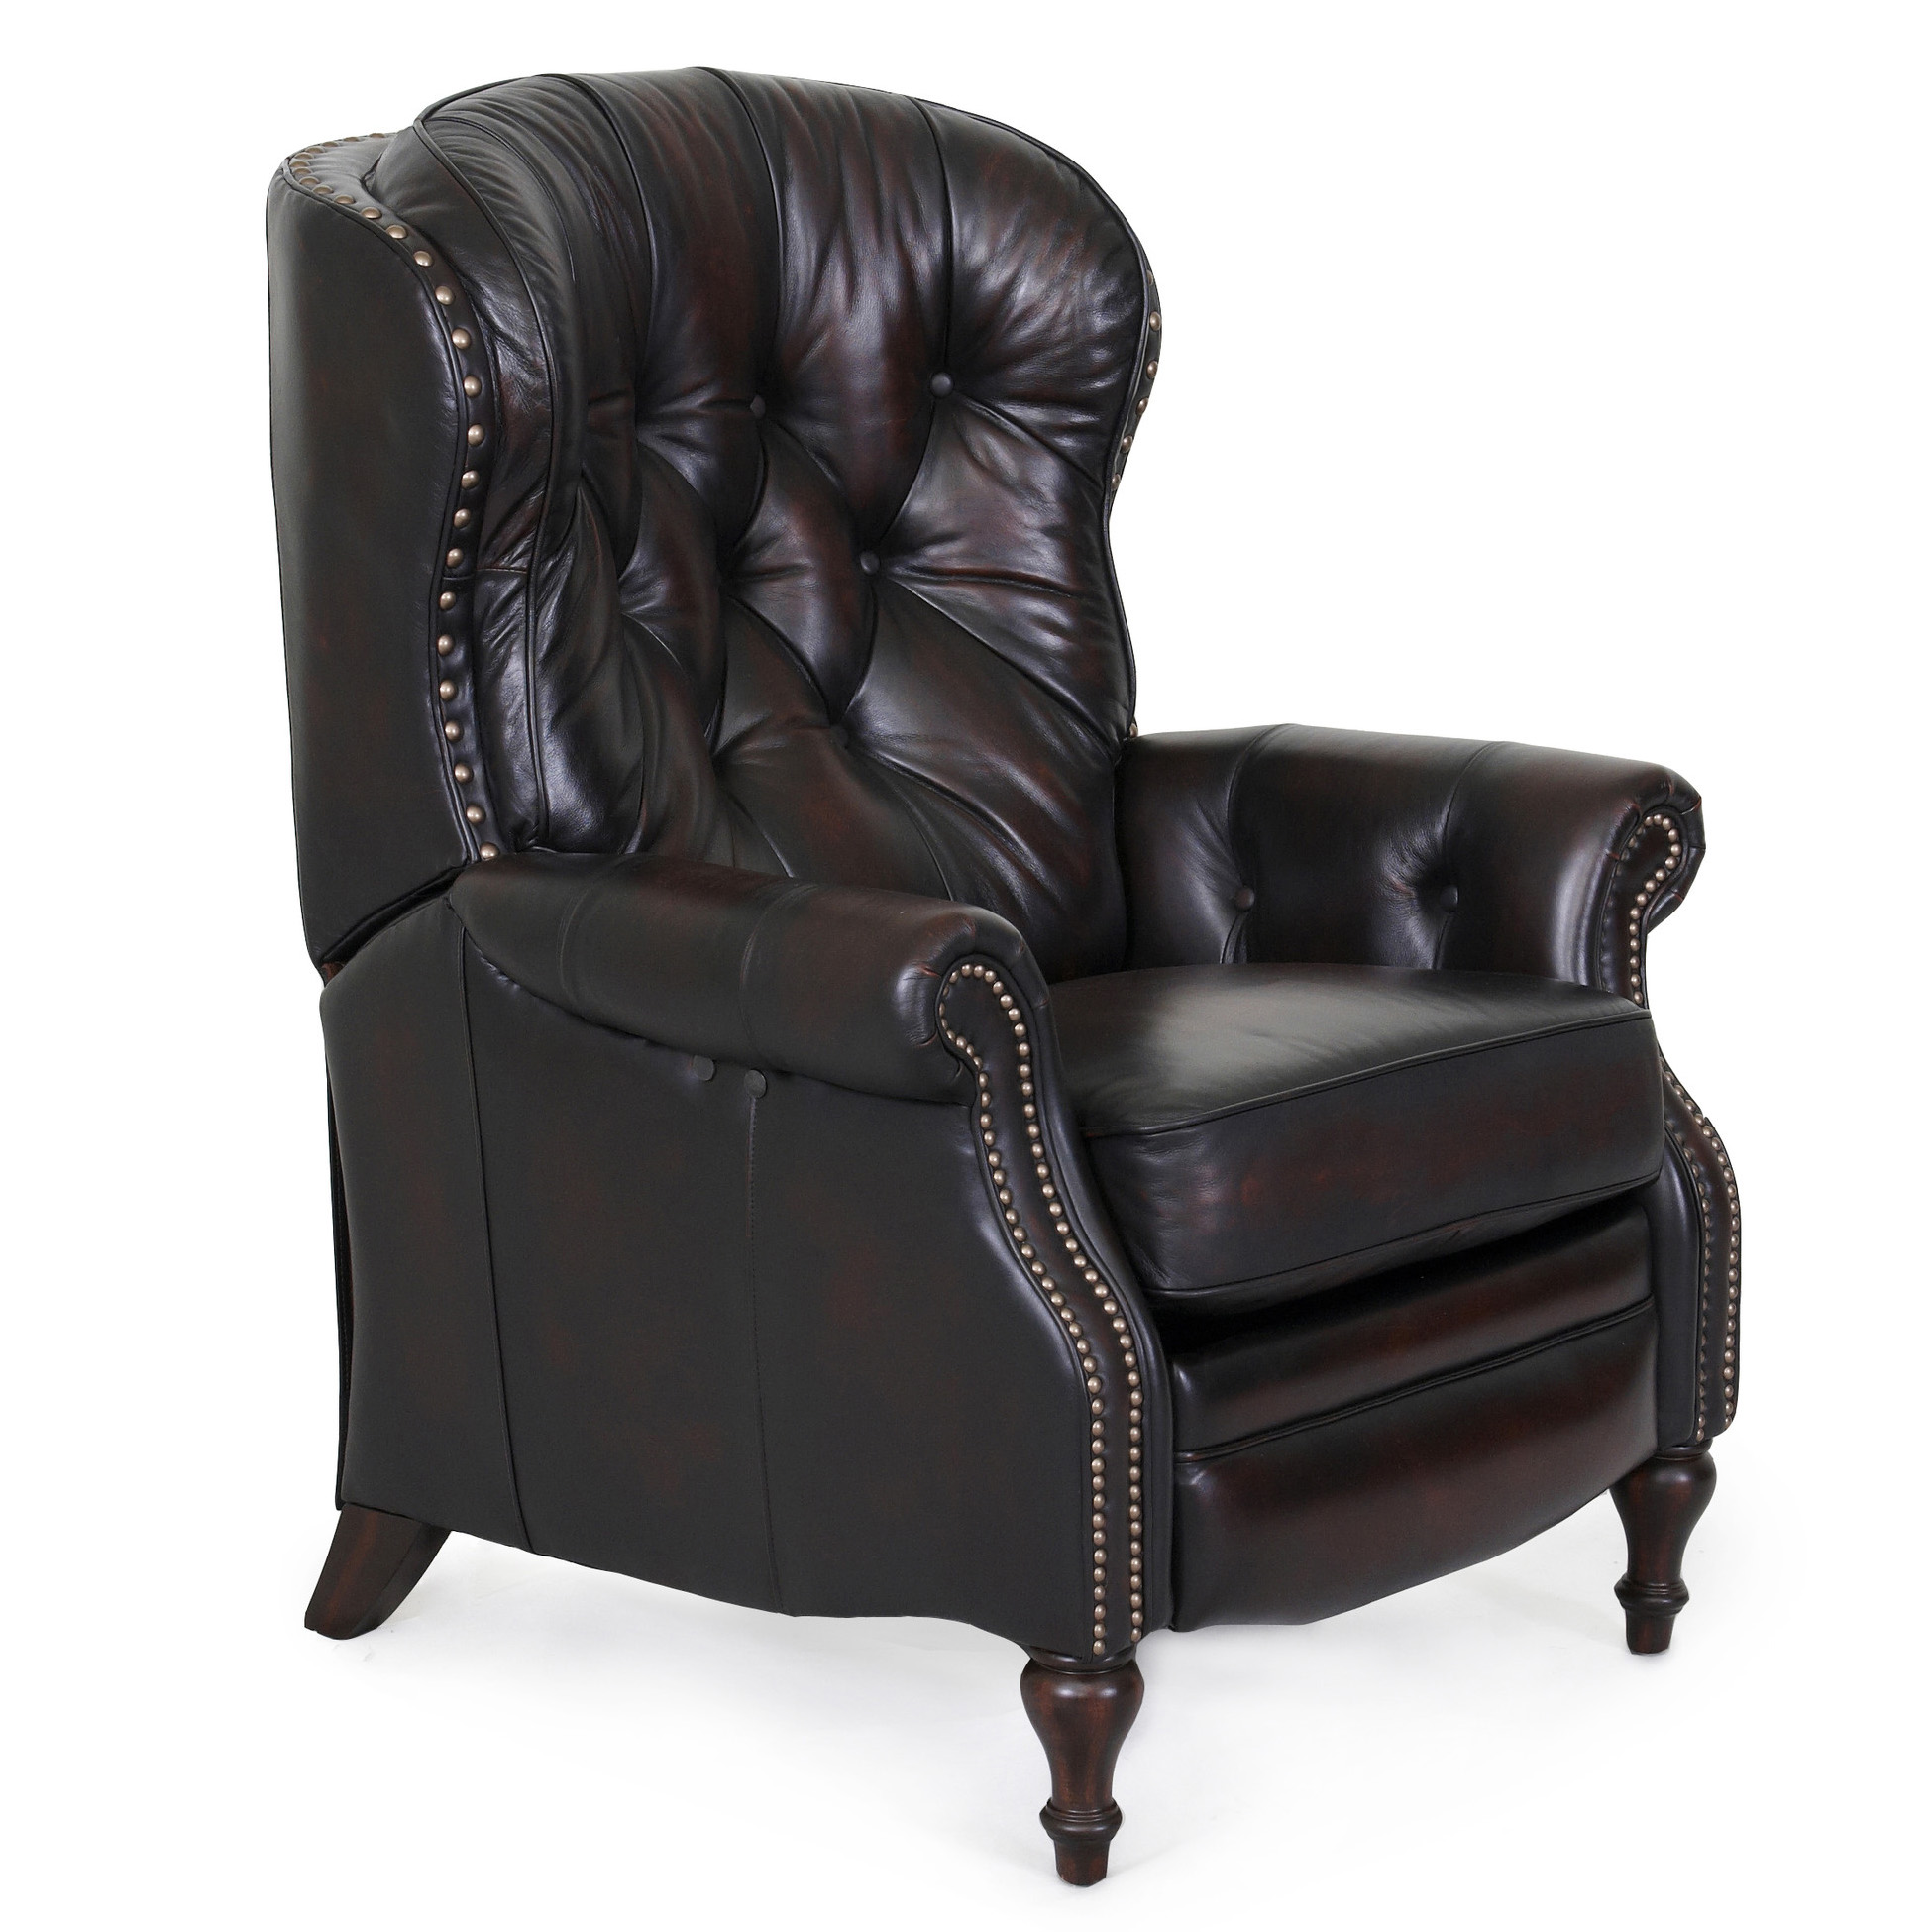 Barcalounger Kendall Ii Leather Recliner Chair